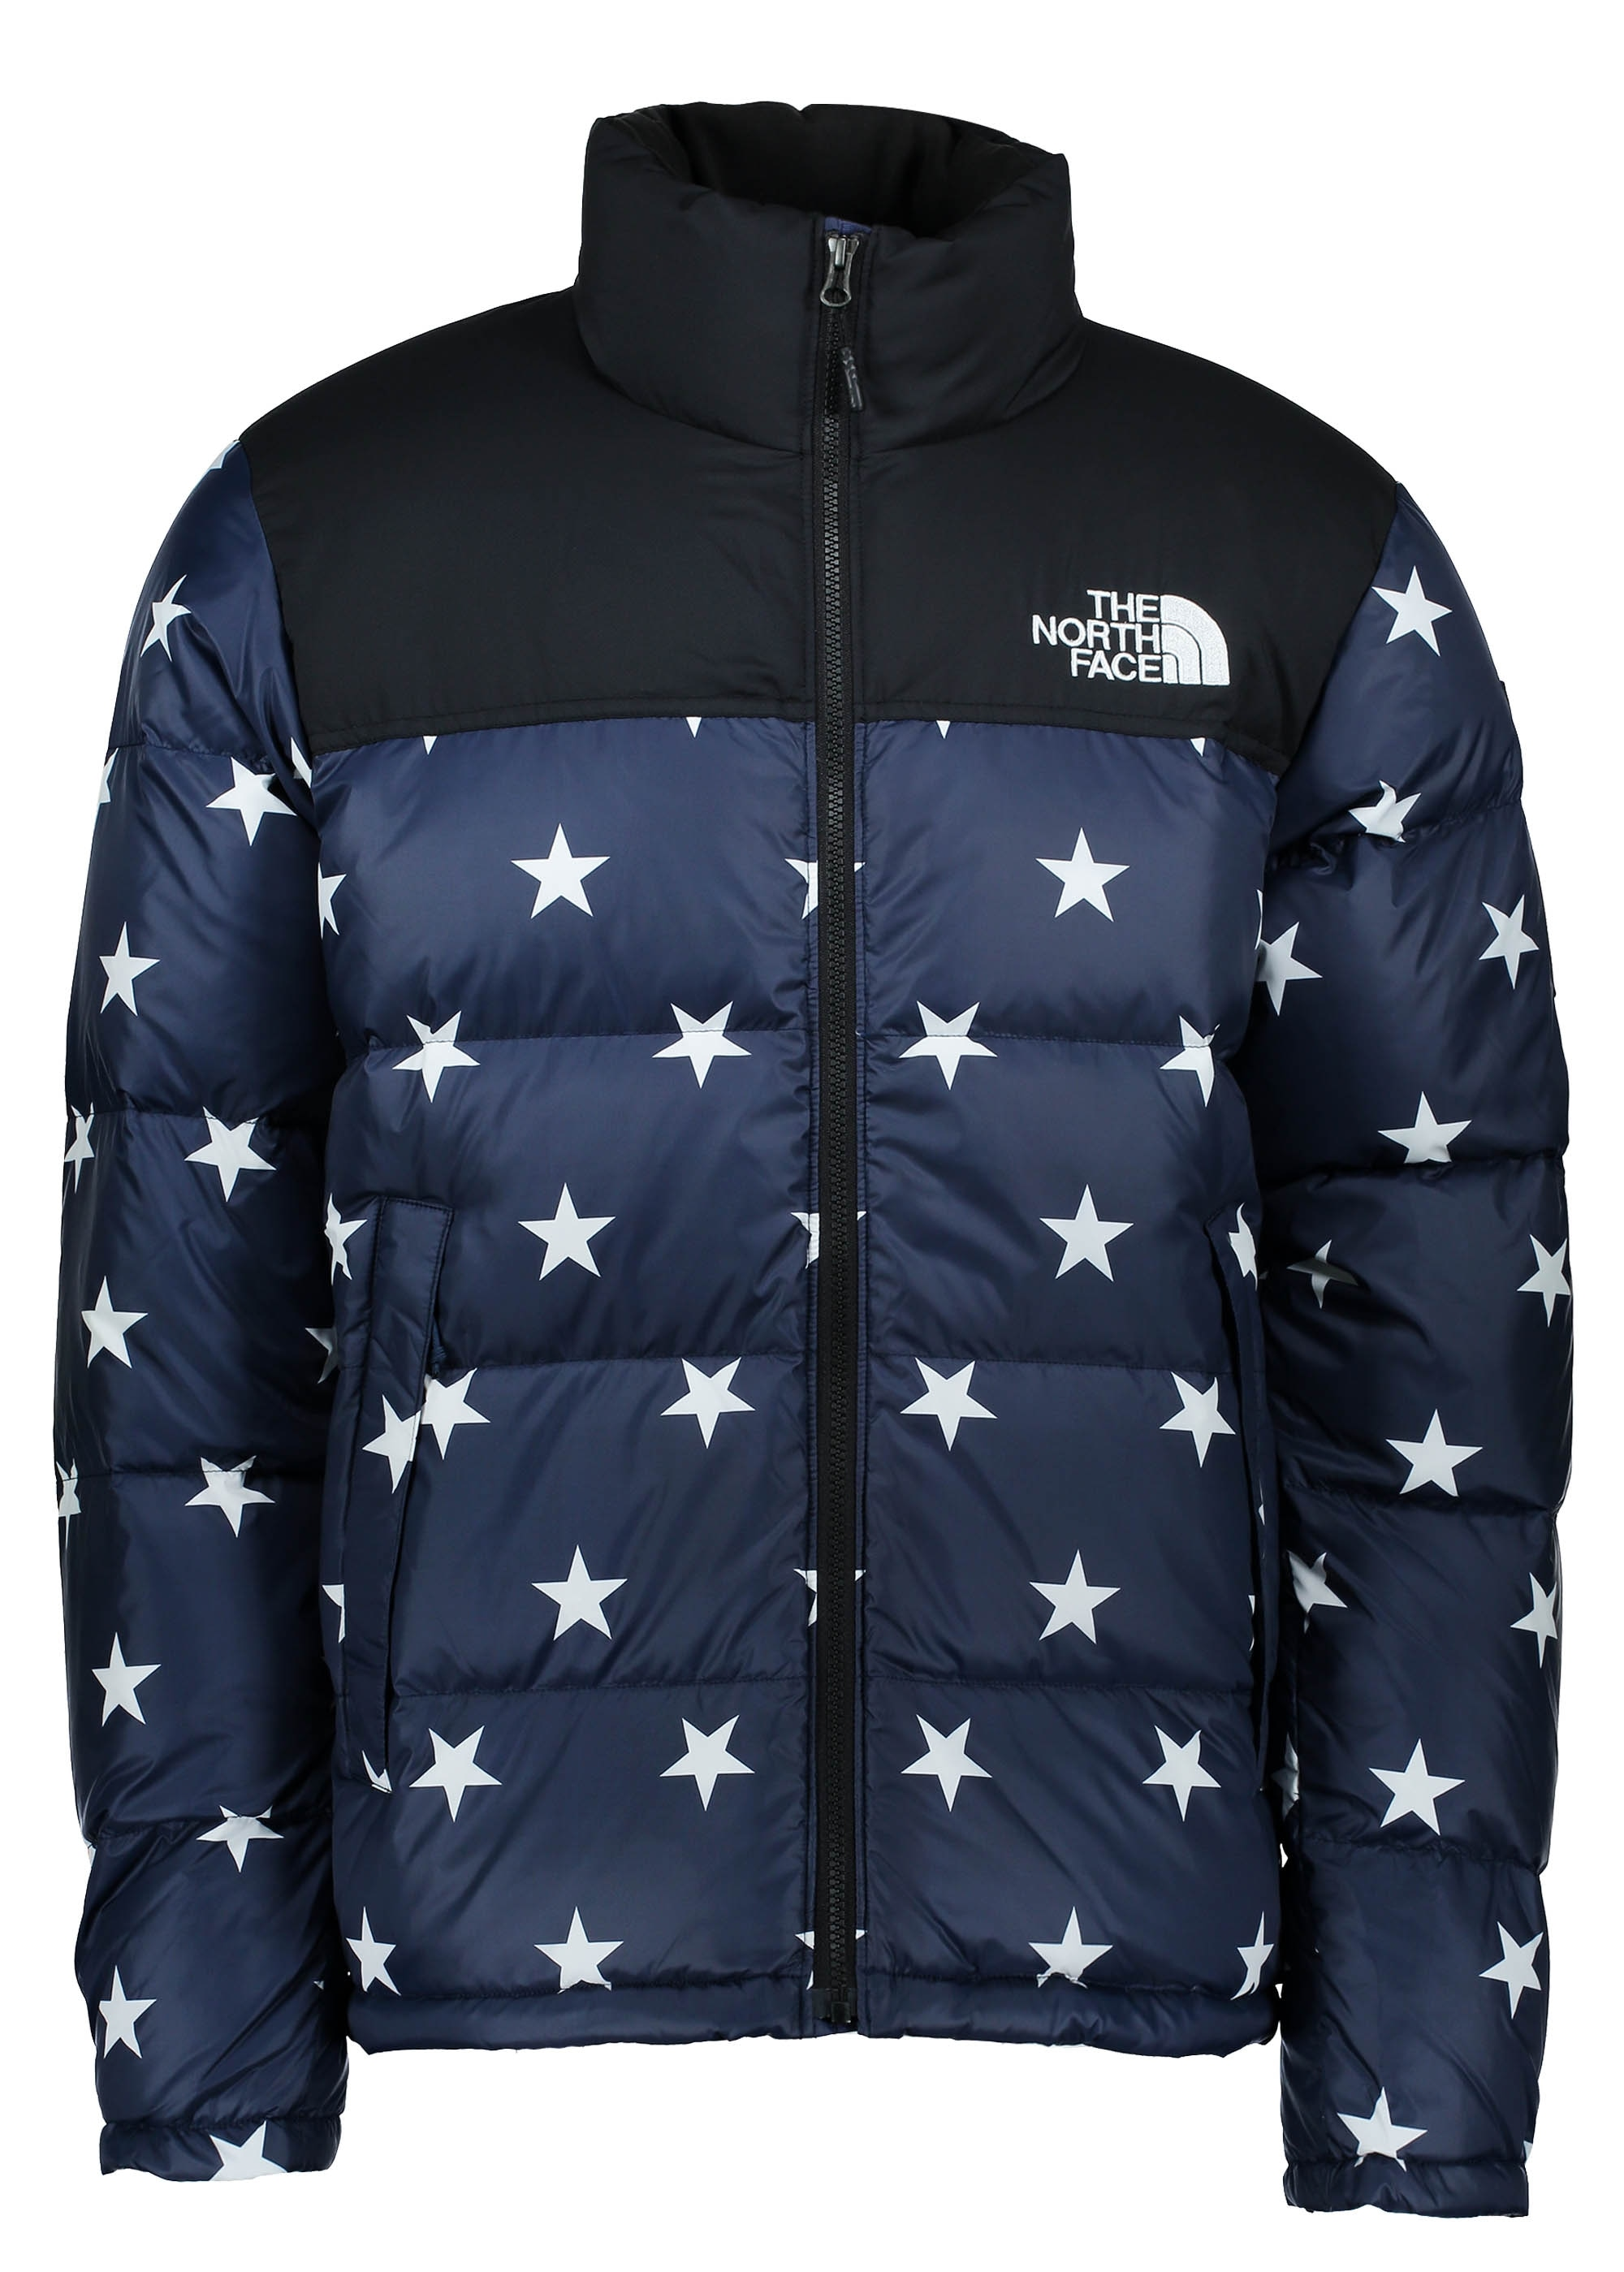 4c36d0a0e74 The North Face International Nuptse Jacket - Cosmic Blue - Jackets ...